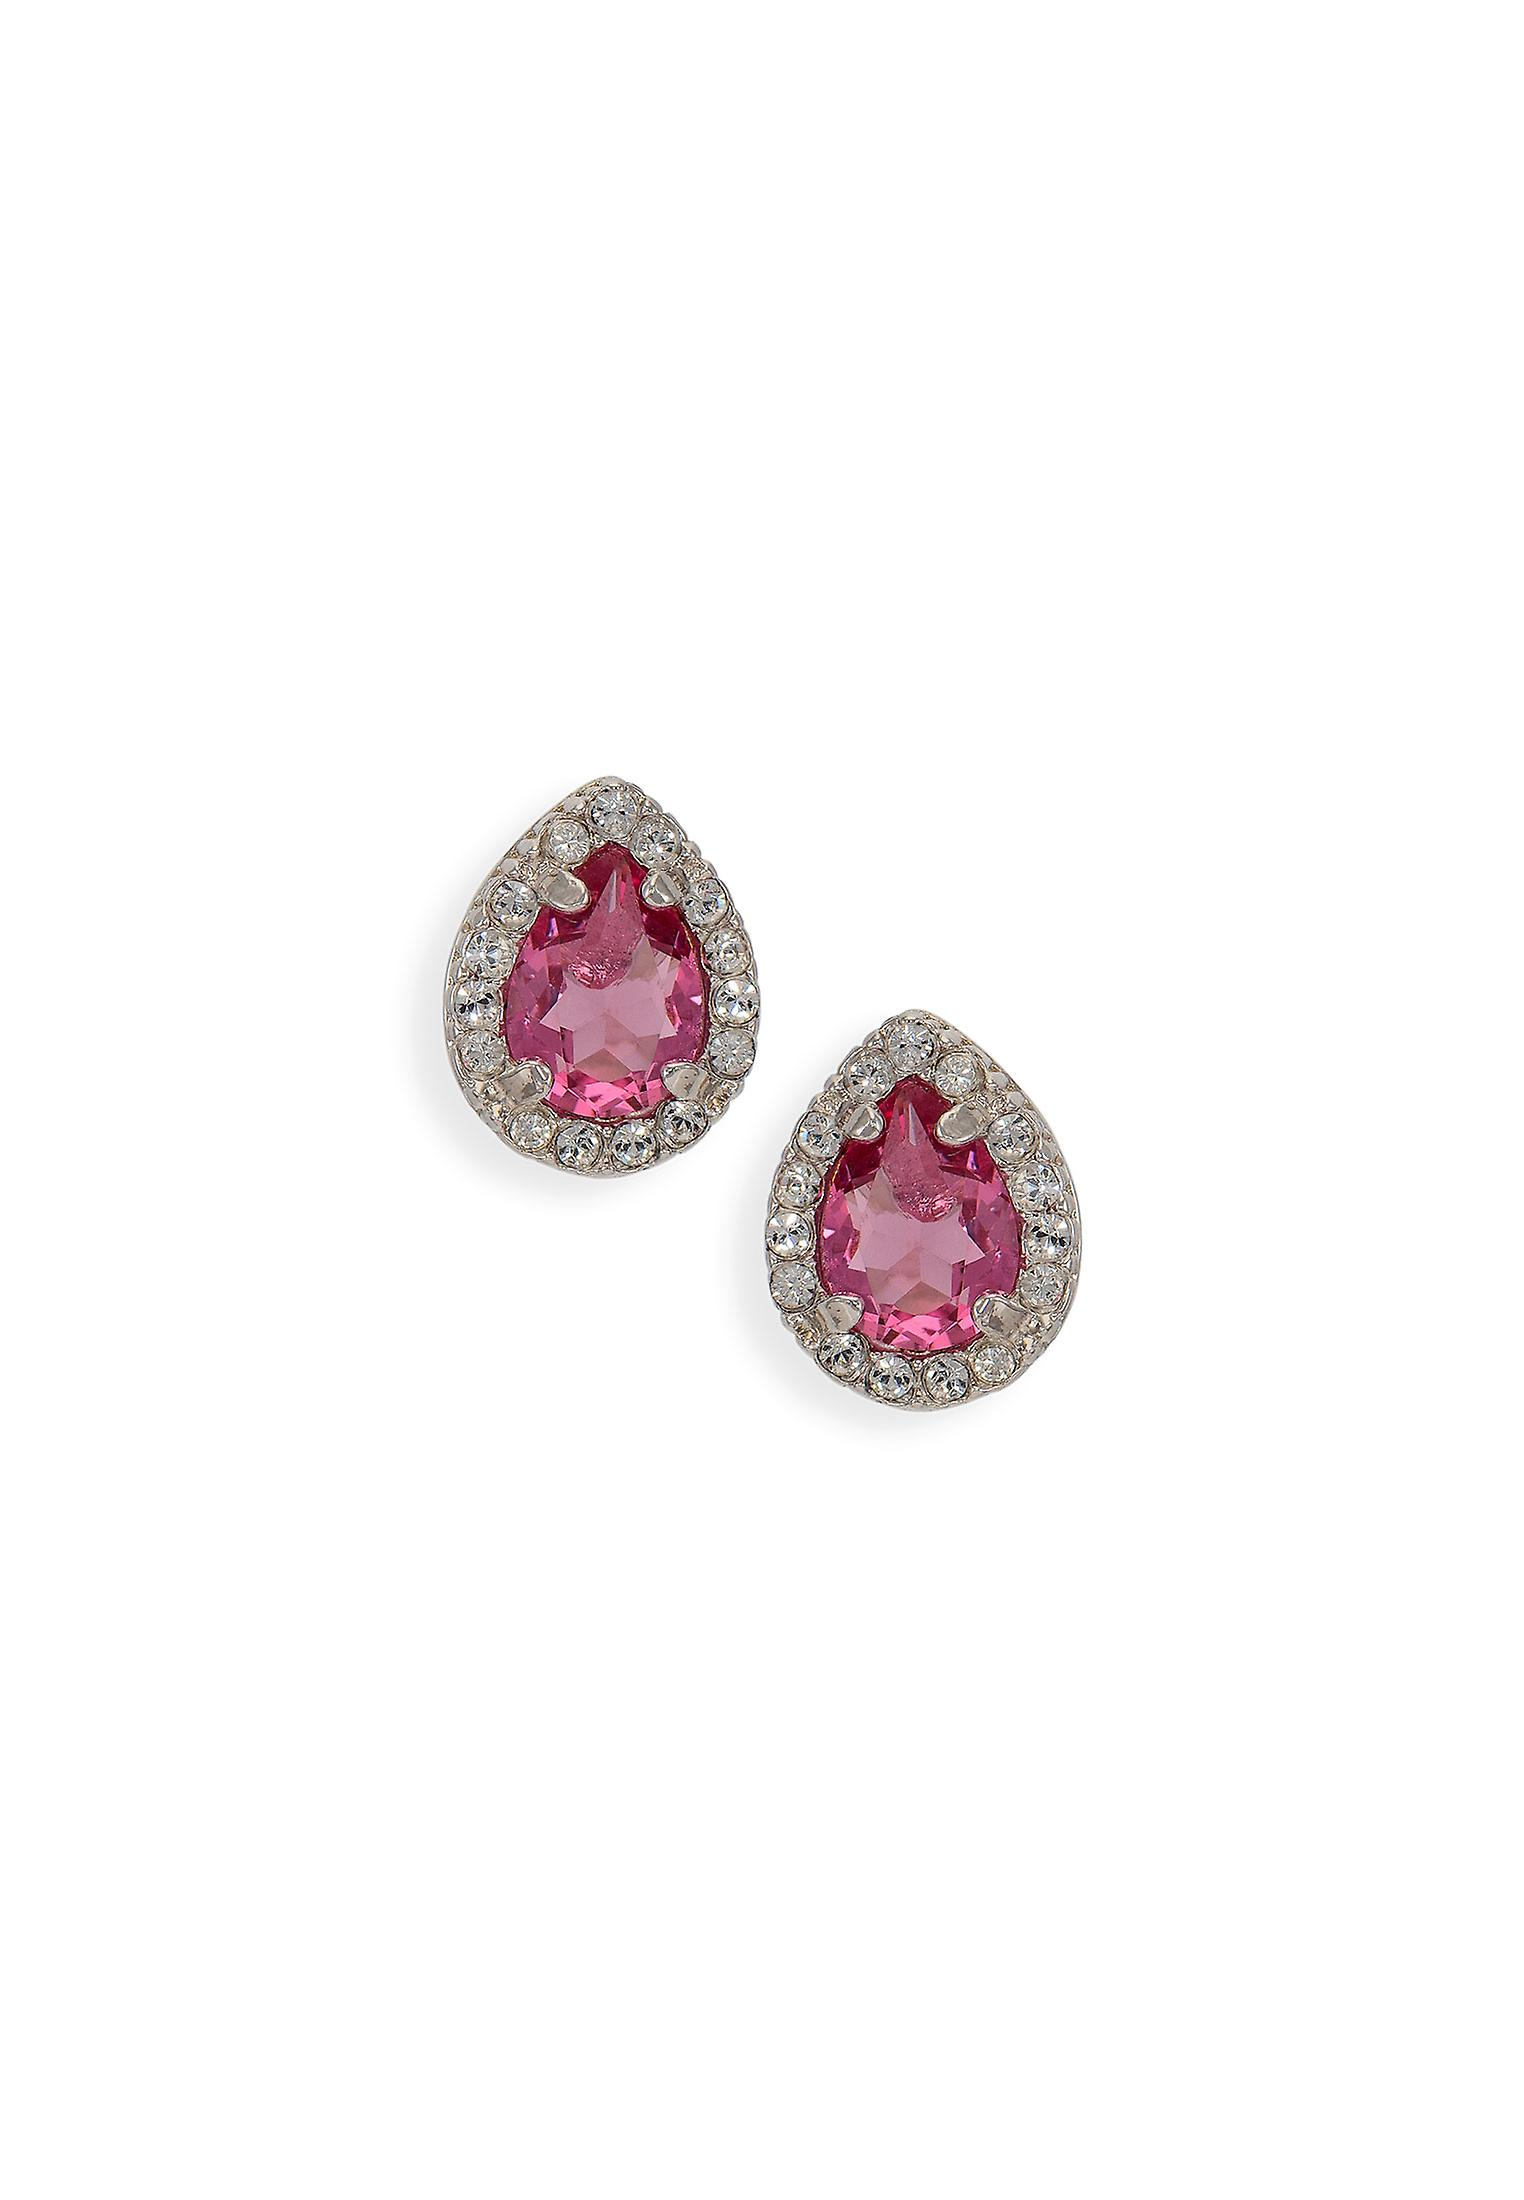 Pink earrings with crystals from Swarovski 513